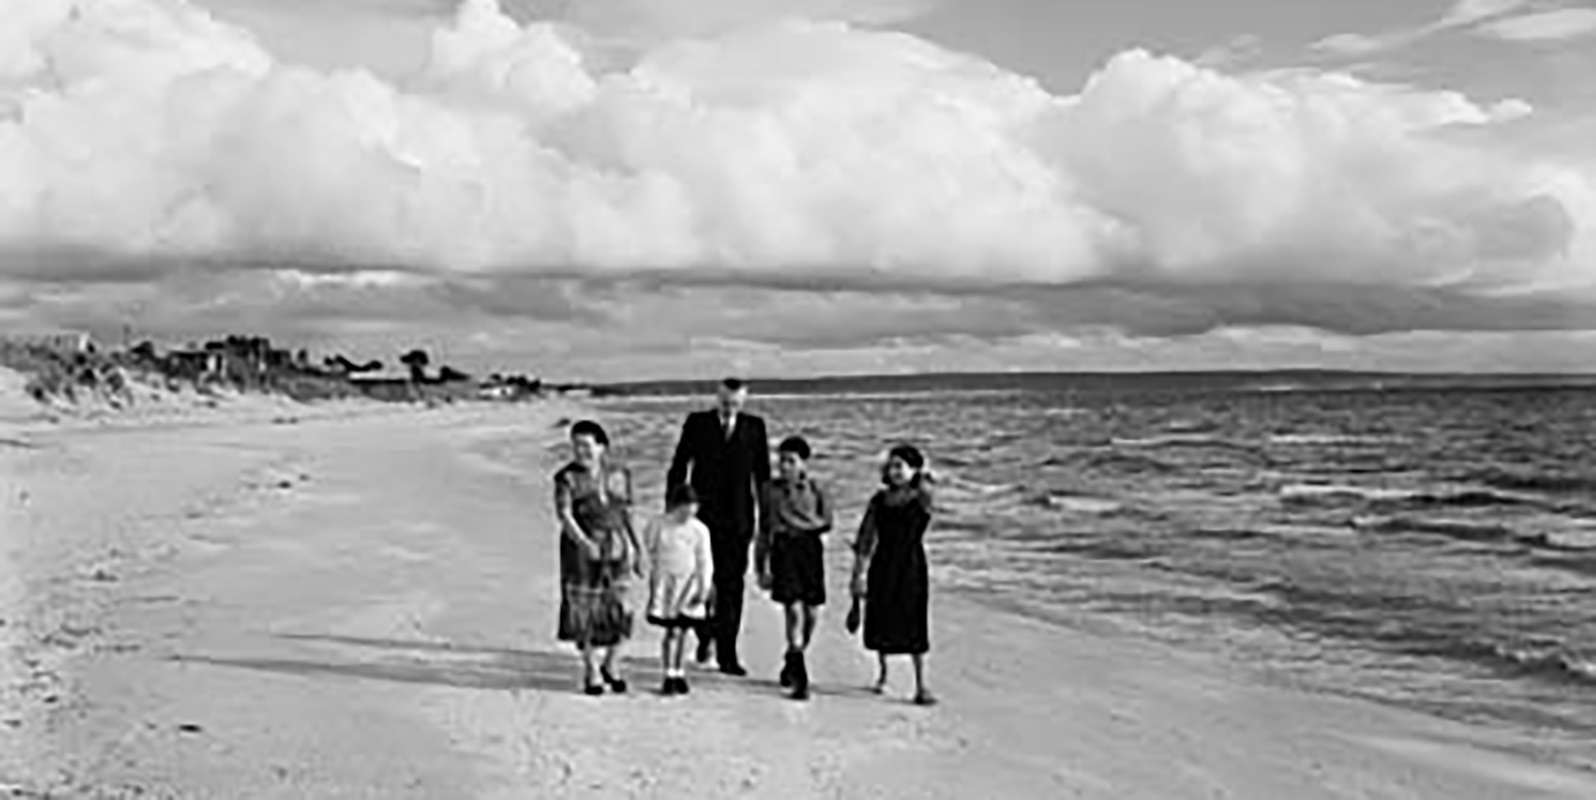 The O'Keefe family at Bonbeach, Victoria, 1956. Left to right: Annie O'Keefe, Geraldine, John O'Keefe, Peter and Mary. Photographer Neil Murray. Reproduced courtesy National Archives of Australia: A1501, A429/5.